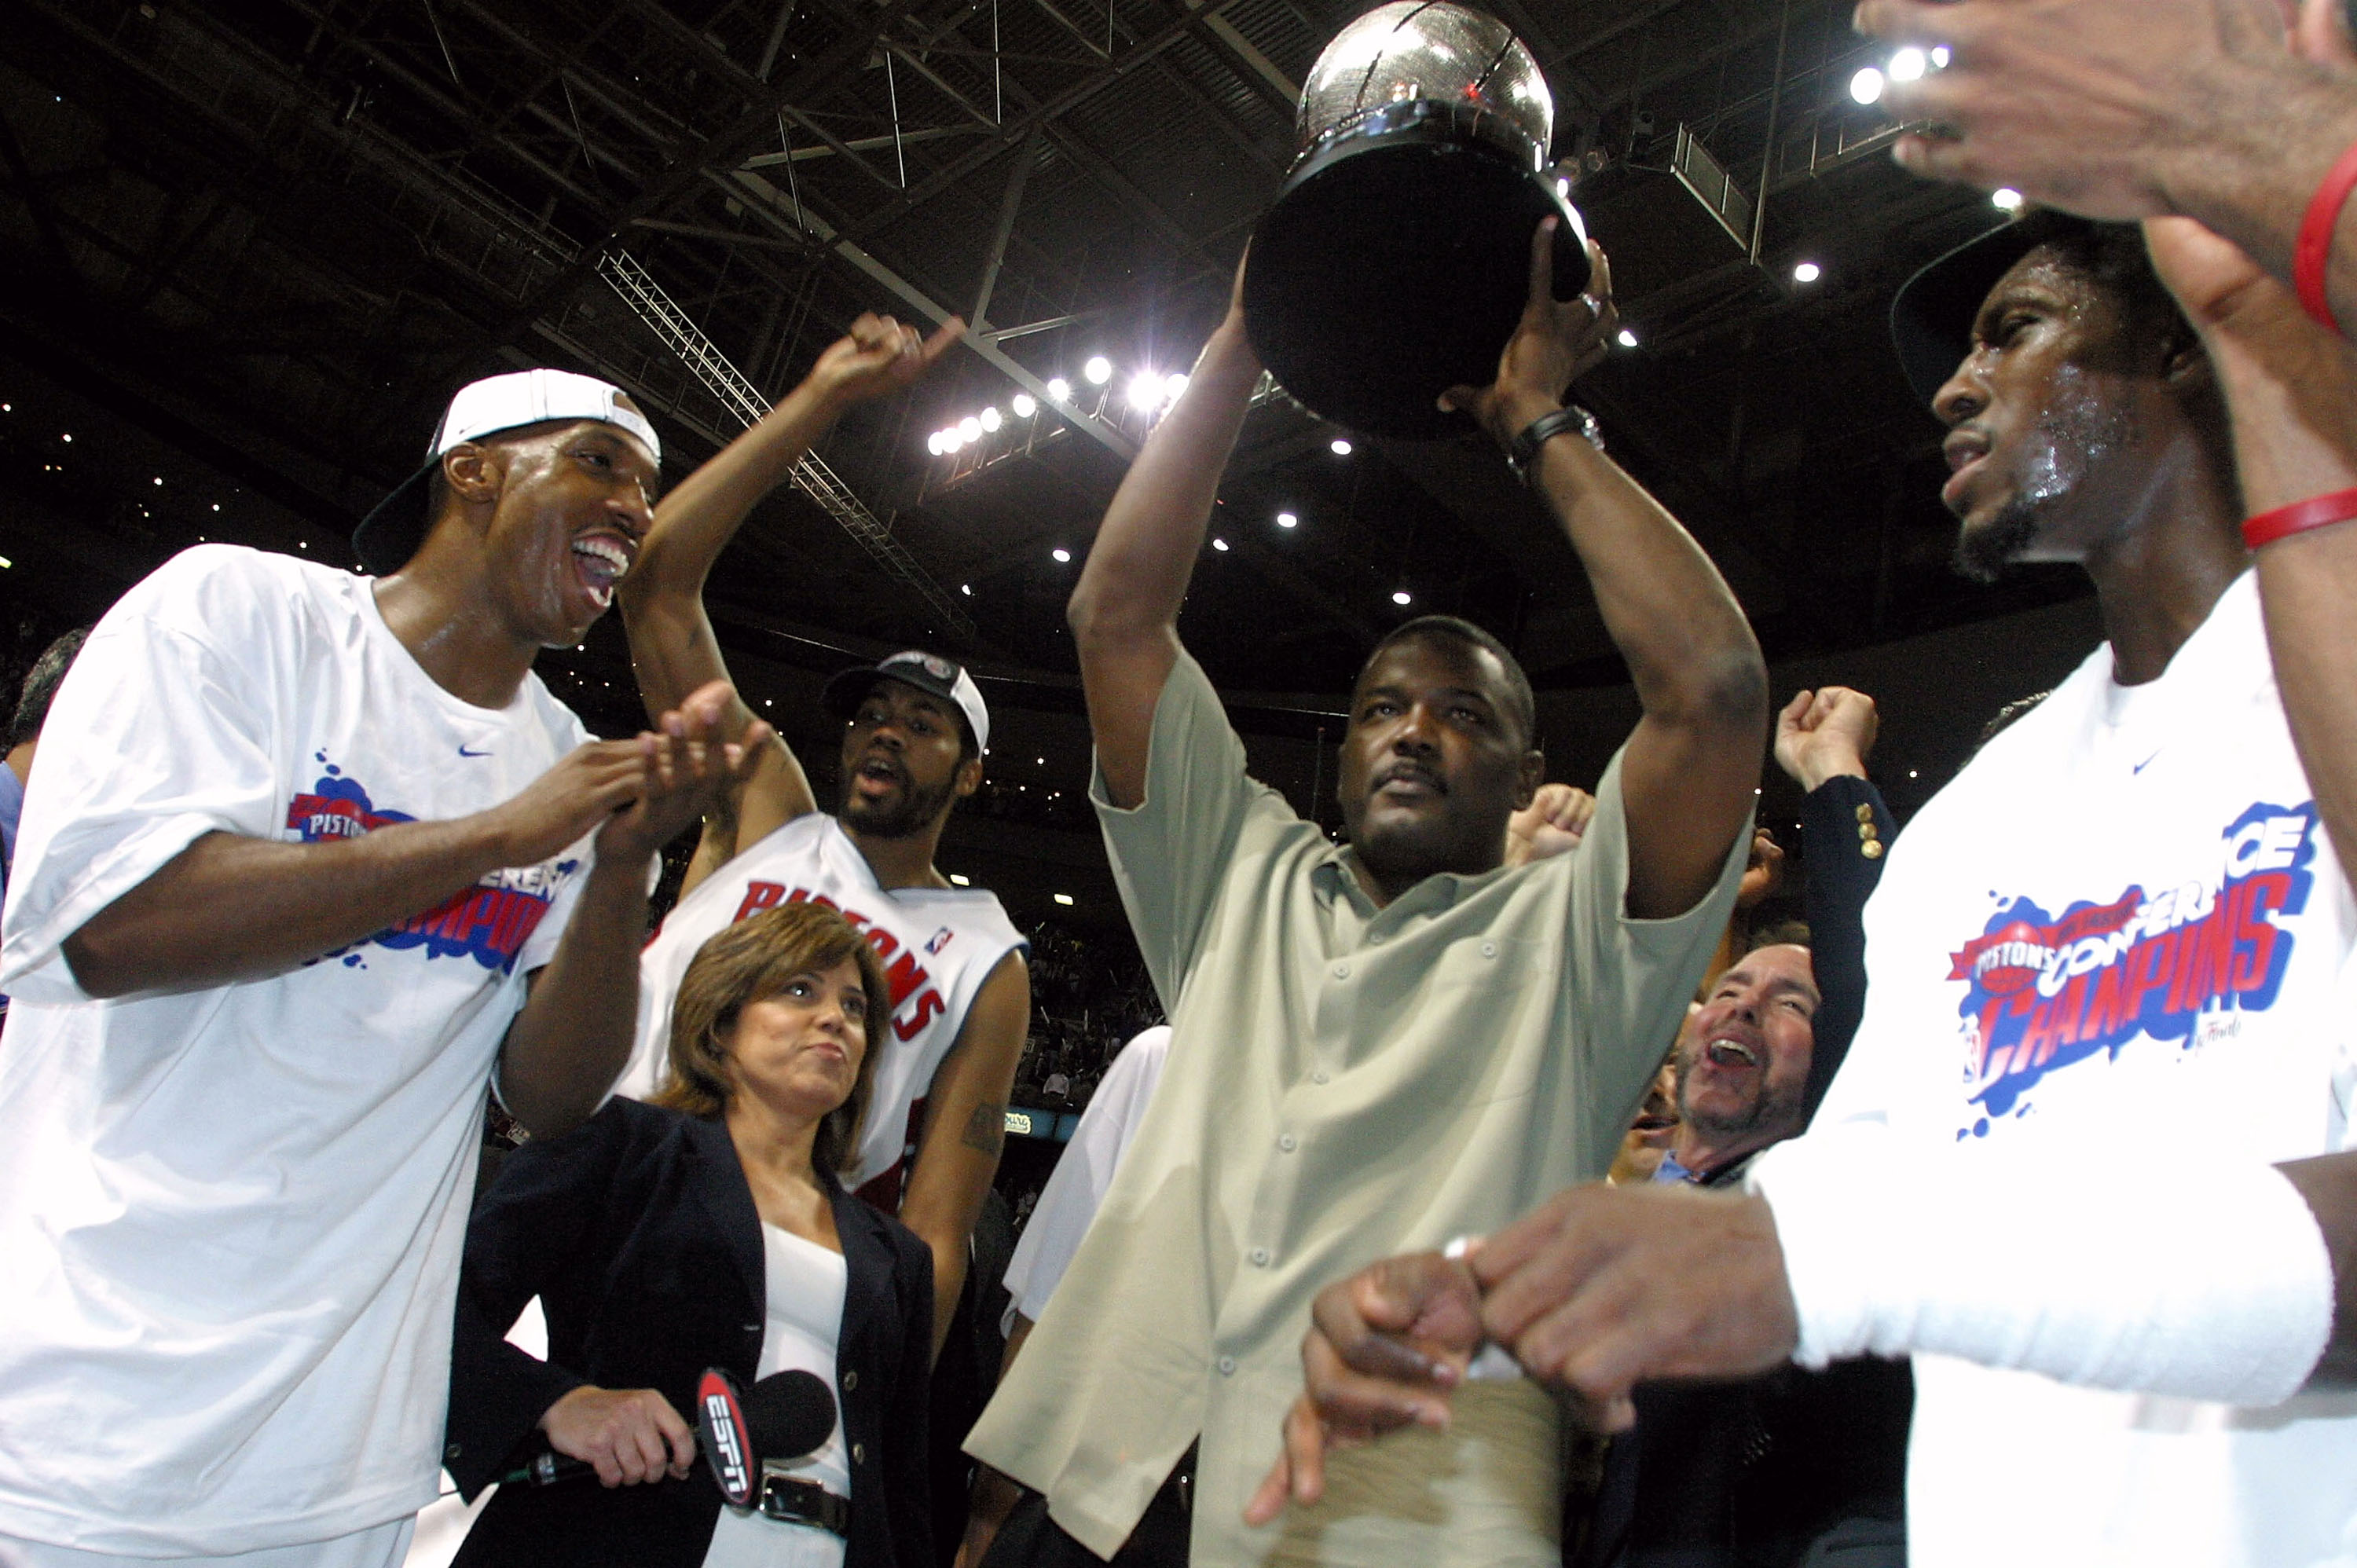 AUBURN HILLS, MI - JUNE 1:  (L-R) Chauncey Billups #1, Rasheed Wallace #30, President of Basketball Operations Joe Dumars (holding trophy) and Ben Wallace #3 of the Detroit Pistons celebrate their win over the Indiana Pacers in Game six of the Eastern Con